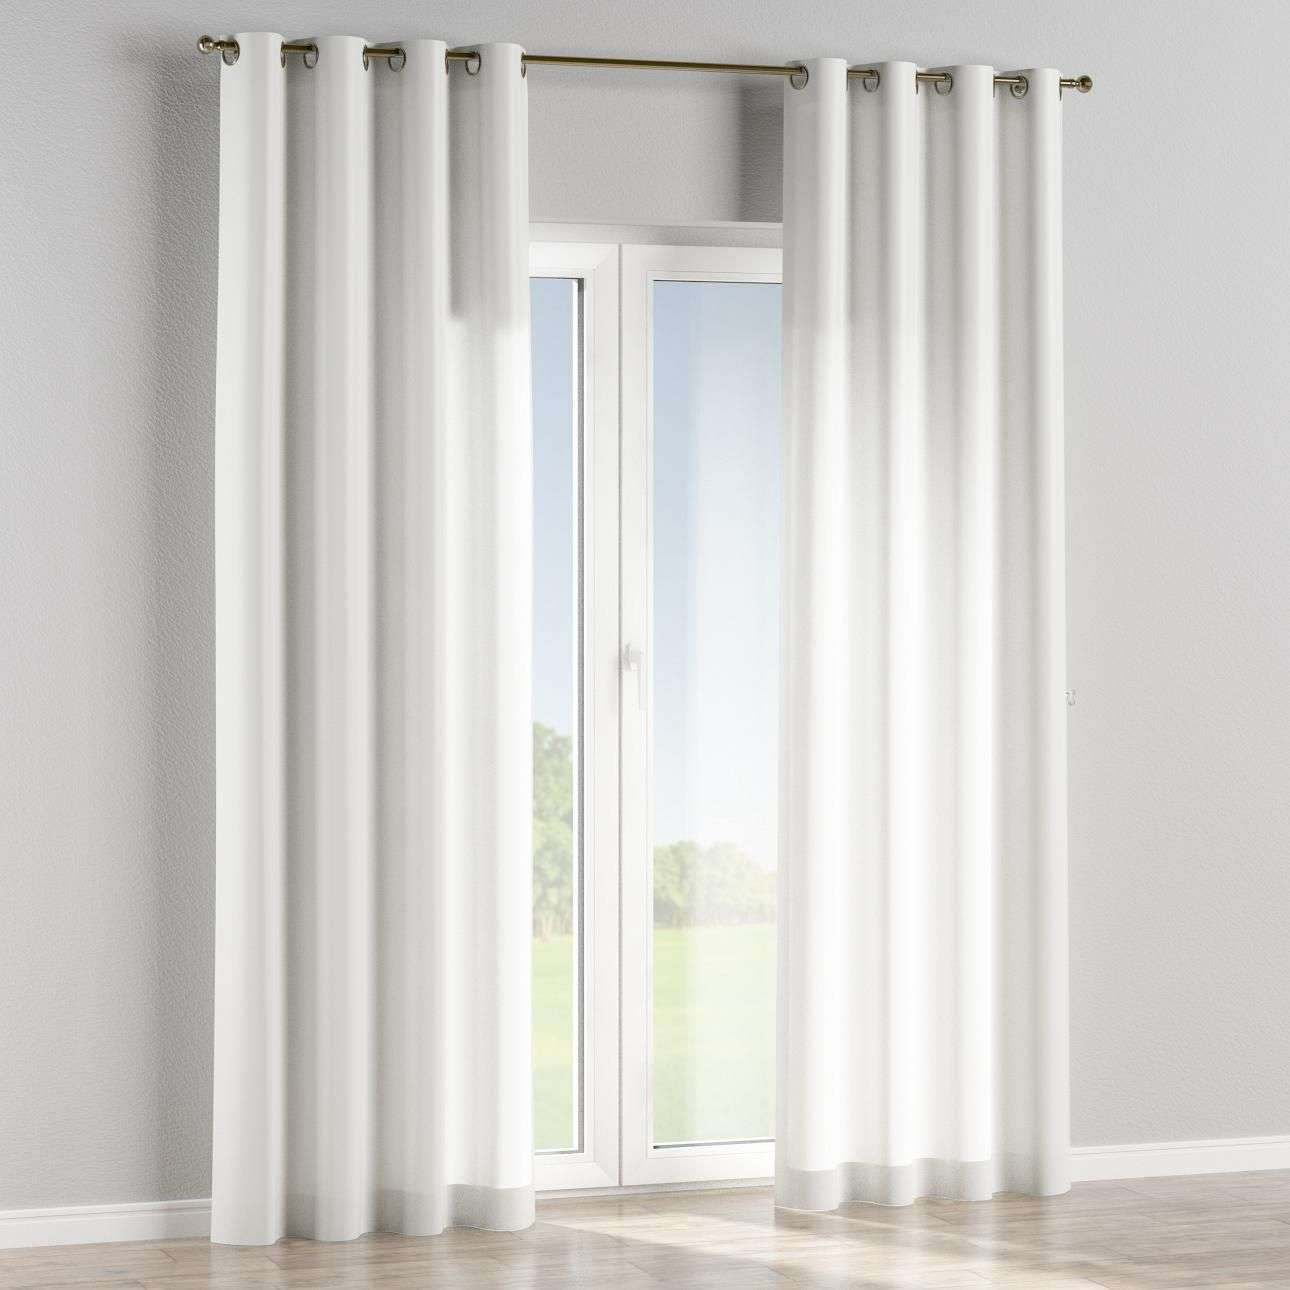 Eyelet lined curtains in collection Bristol, fabric: 126-15